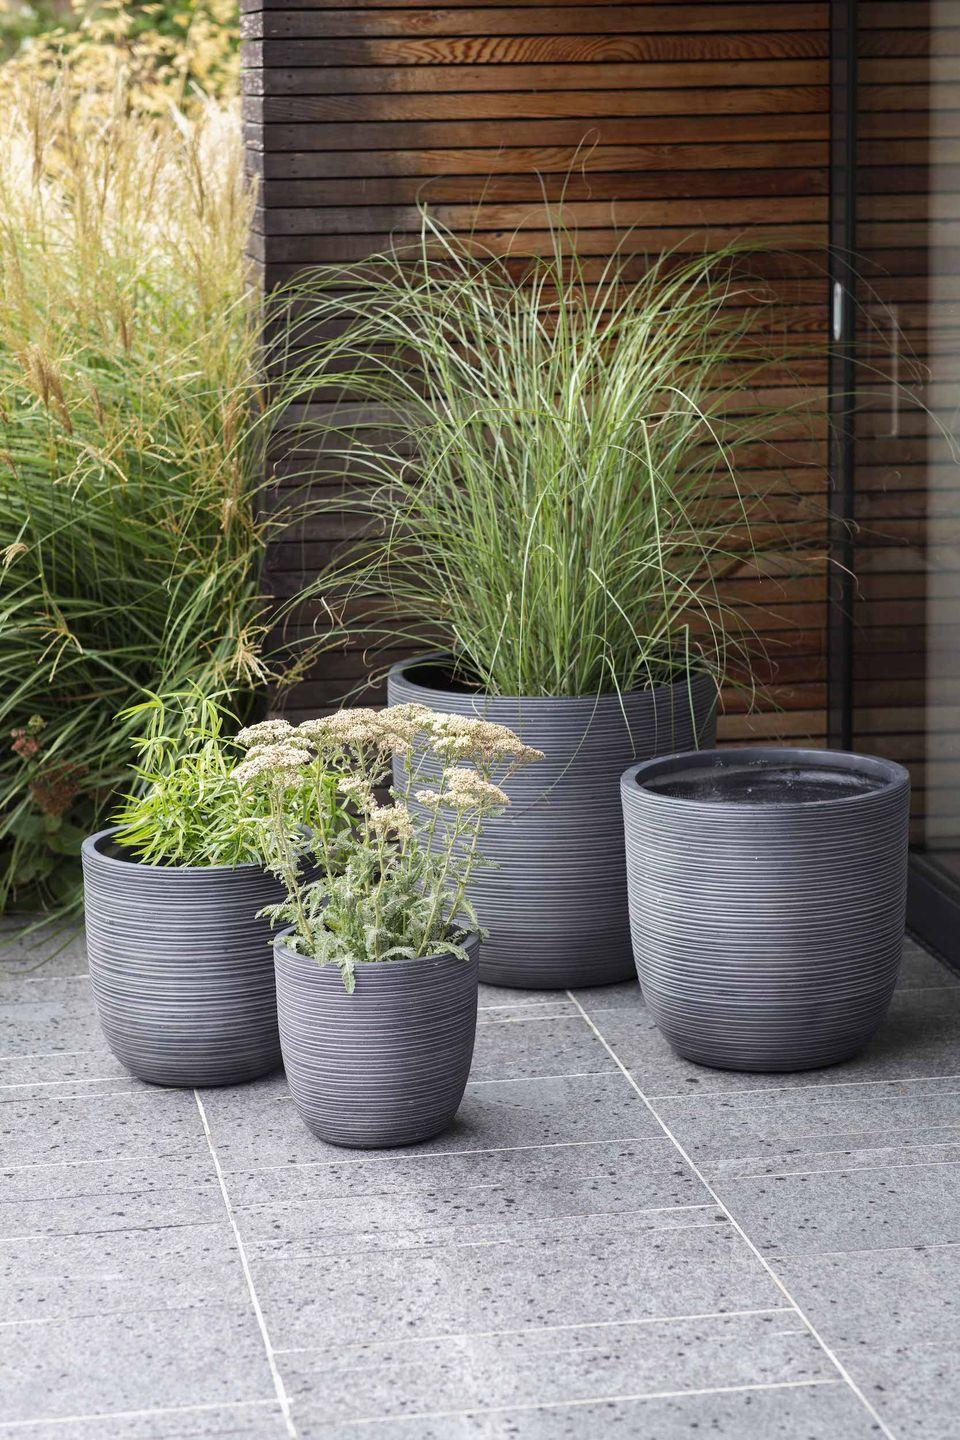 """<p>No lawn? <a href=""""https://www.housebeautiful.com/uk/garden/a30988214/container-gardening/"""" rel=""""nofollow noopener"""" target=""""_blank"""" data-ylk=""""slk:Container gardening"""" class=""""link rapid-noclick-resp"""">Container gardening</a> is a really easy way to get your garden looking beautiful with blooming flowers, and it's especially ideal for patios, balconies or other paved areas. Remember, containers can restrict root growth, so you need to ensure an even water supply and good drainage, and choose the right <a href=""""https://www.housebeautiful.com/uk/garden/plants/a28431929/garden-compost/"""" rel=""""nofollow noopener"""" target=""""_blank"""" data-ylk=""""slk:compost"""" class=""""link rapid-noclick-resp"""">compost</a>.<strong><br></strong></p><p><strong>Pictured: </strong>Rodborough Planters, <a href=""""https://go.redirectingat.com?id=127X1599956&url=https%3A%2F%2Fwww.gardentrading.co.uk%2F_all%3Fsearchterm%3DRodborough%2BPlanter&sref=https%3A%2F%2Fwww.housebeautiful.com%2Fuk%2Fgarden%2Fdesigns%2Fg28%2Fgarden-ideas-on-a-budget%2F"""" rel=""""nofollow noopener"""" target=""""_blank"""" data-ylk=""""slk:Garden Trading"""" class=""""link rapid-noclick-resp"""">Garden Trading </a></p>"""